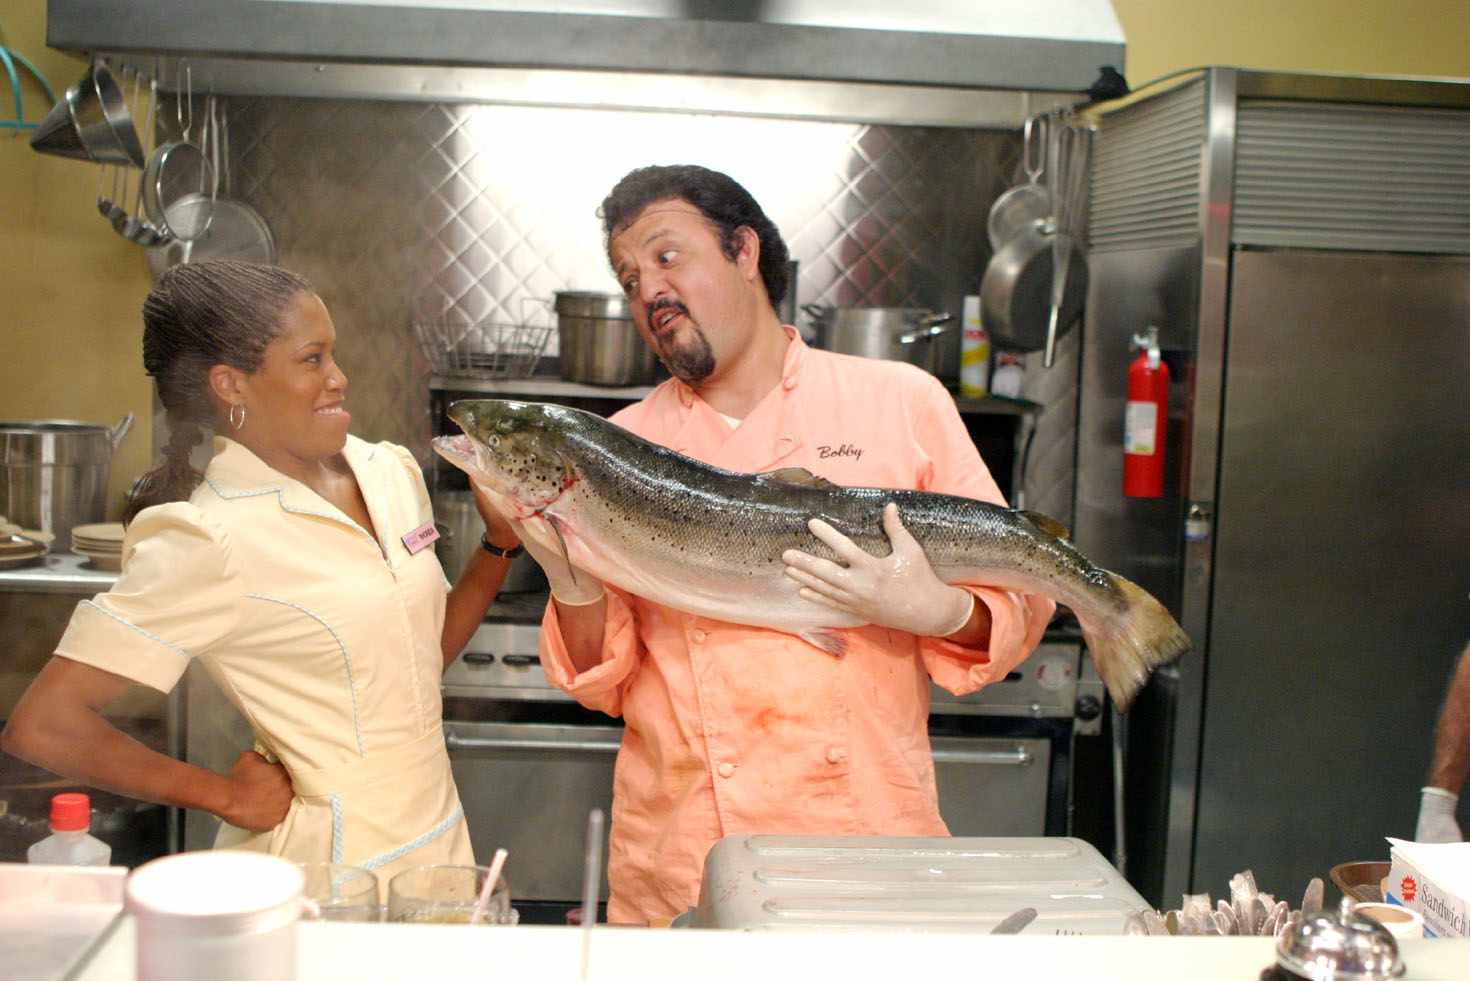 Bobby putting a big fish near Rhonda's face in the kitchen of the diner